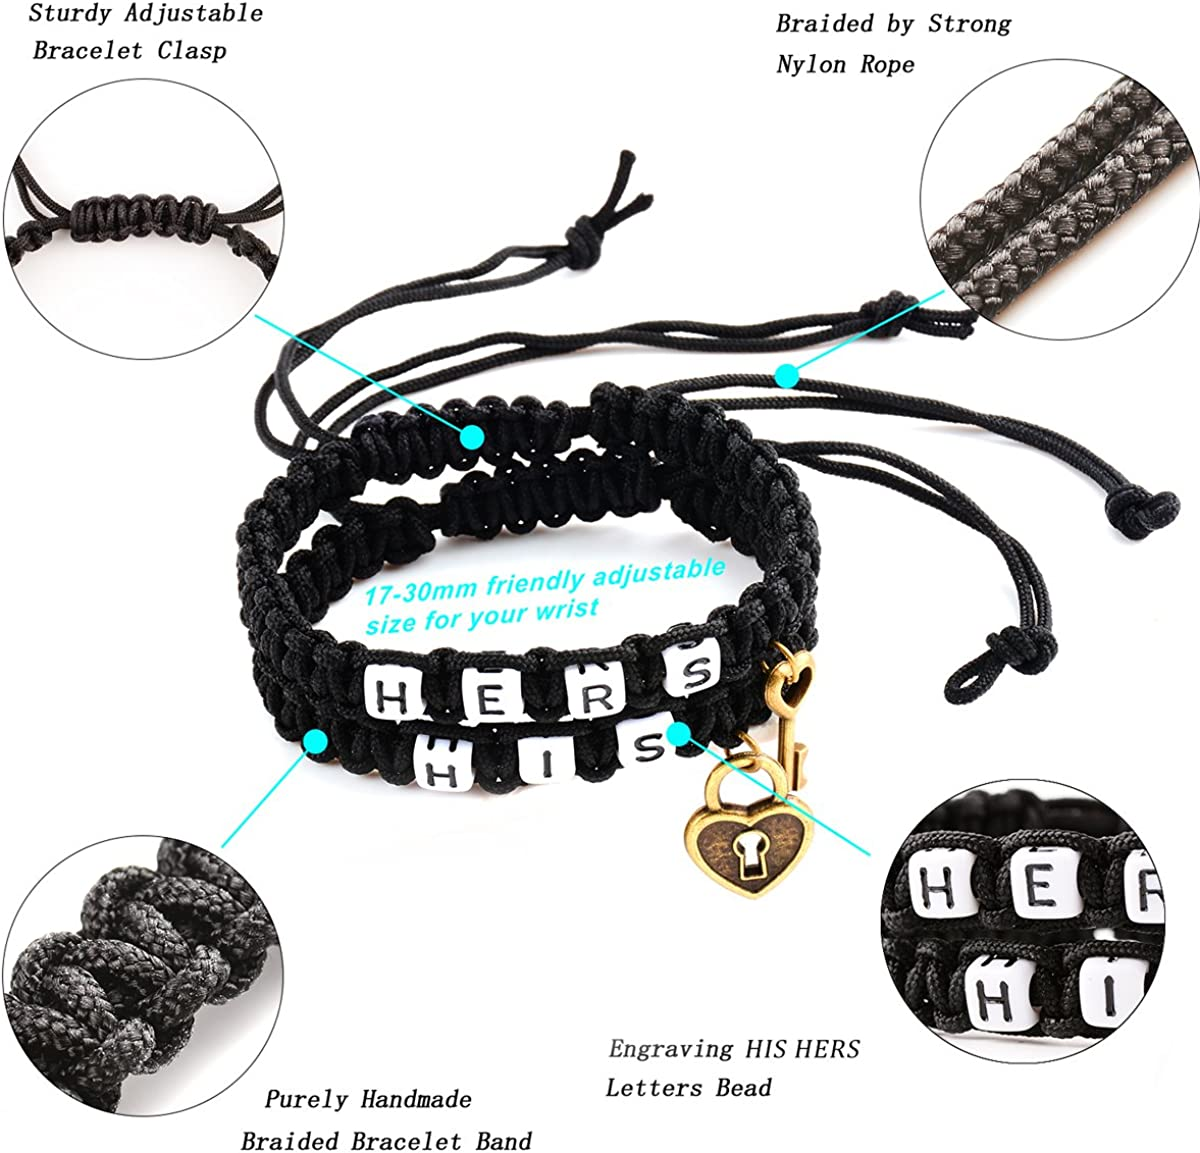 Couple Bracelets-Morenitor Valentines Day Gifts Handmade Key and Lock Braided Bracelet His and Hers Jewelry Set for Lover